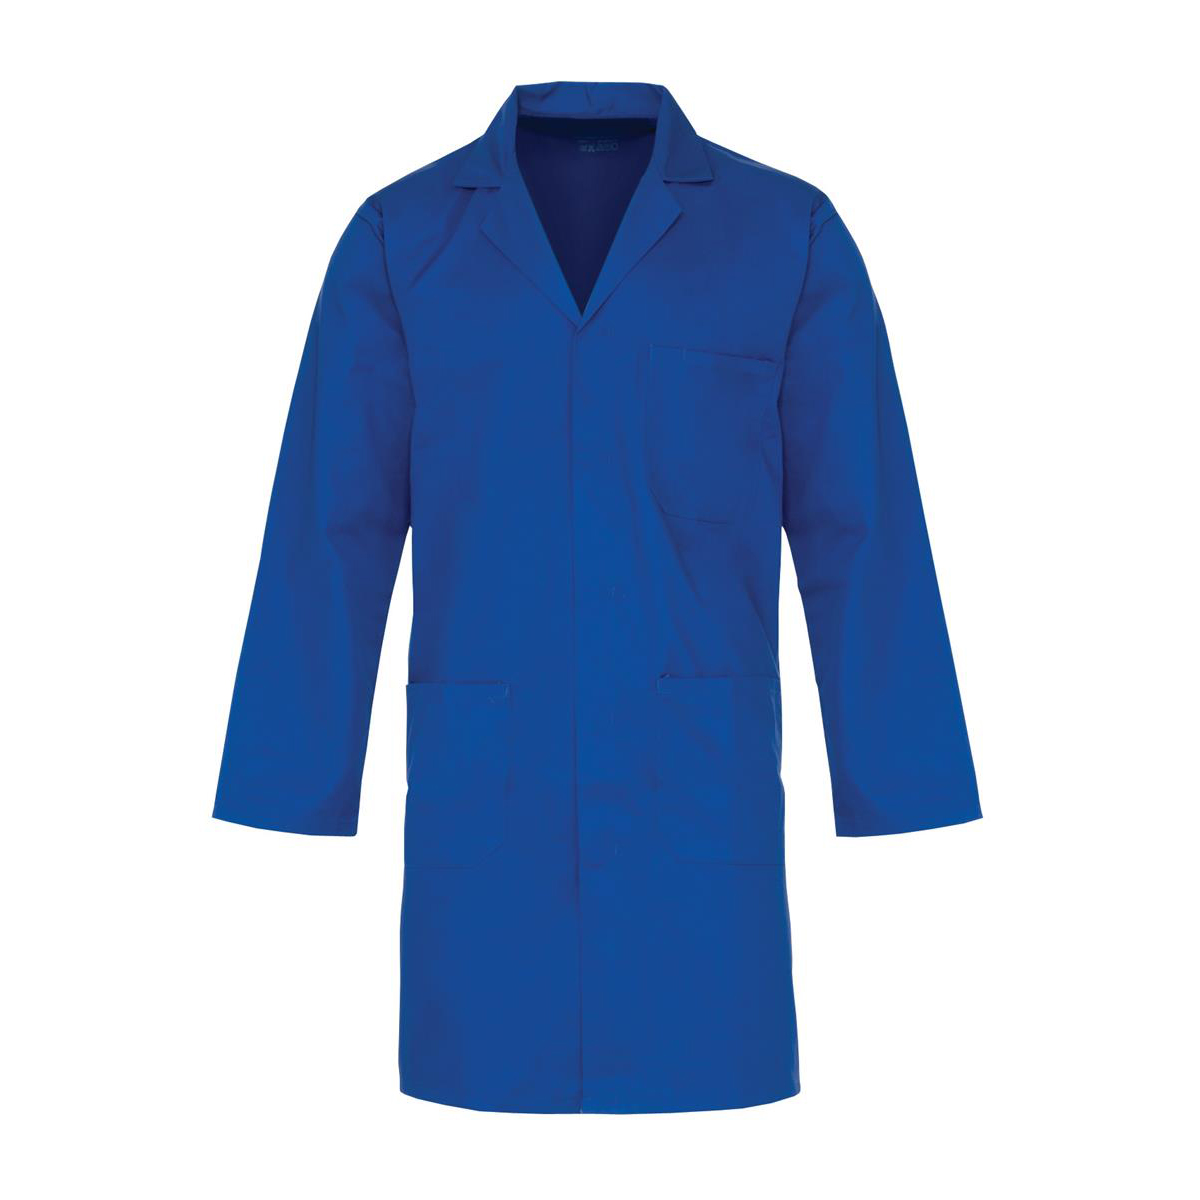 Supertouch Lab Coat Polycotton with 3 Pockets Extra Large Navy Ref 57014 *Approx 3 Day Leadtime*